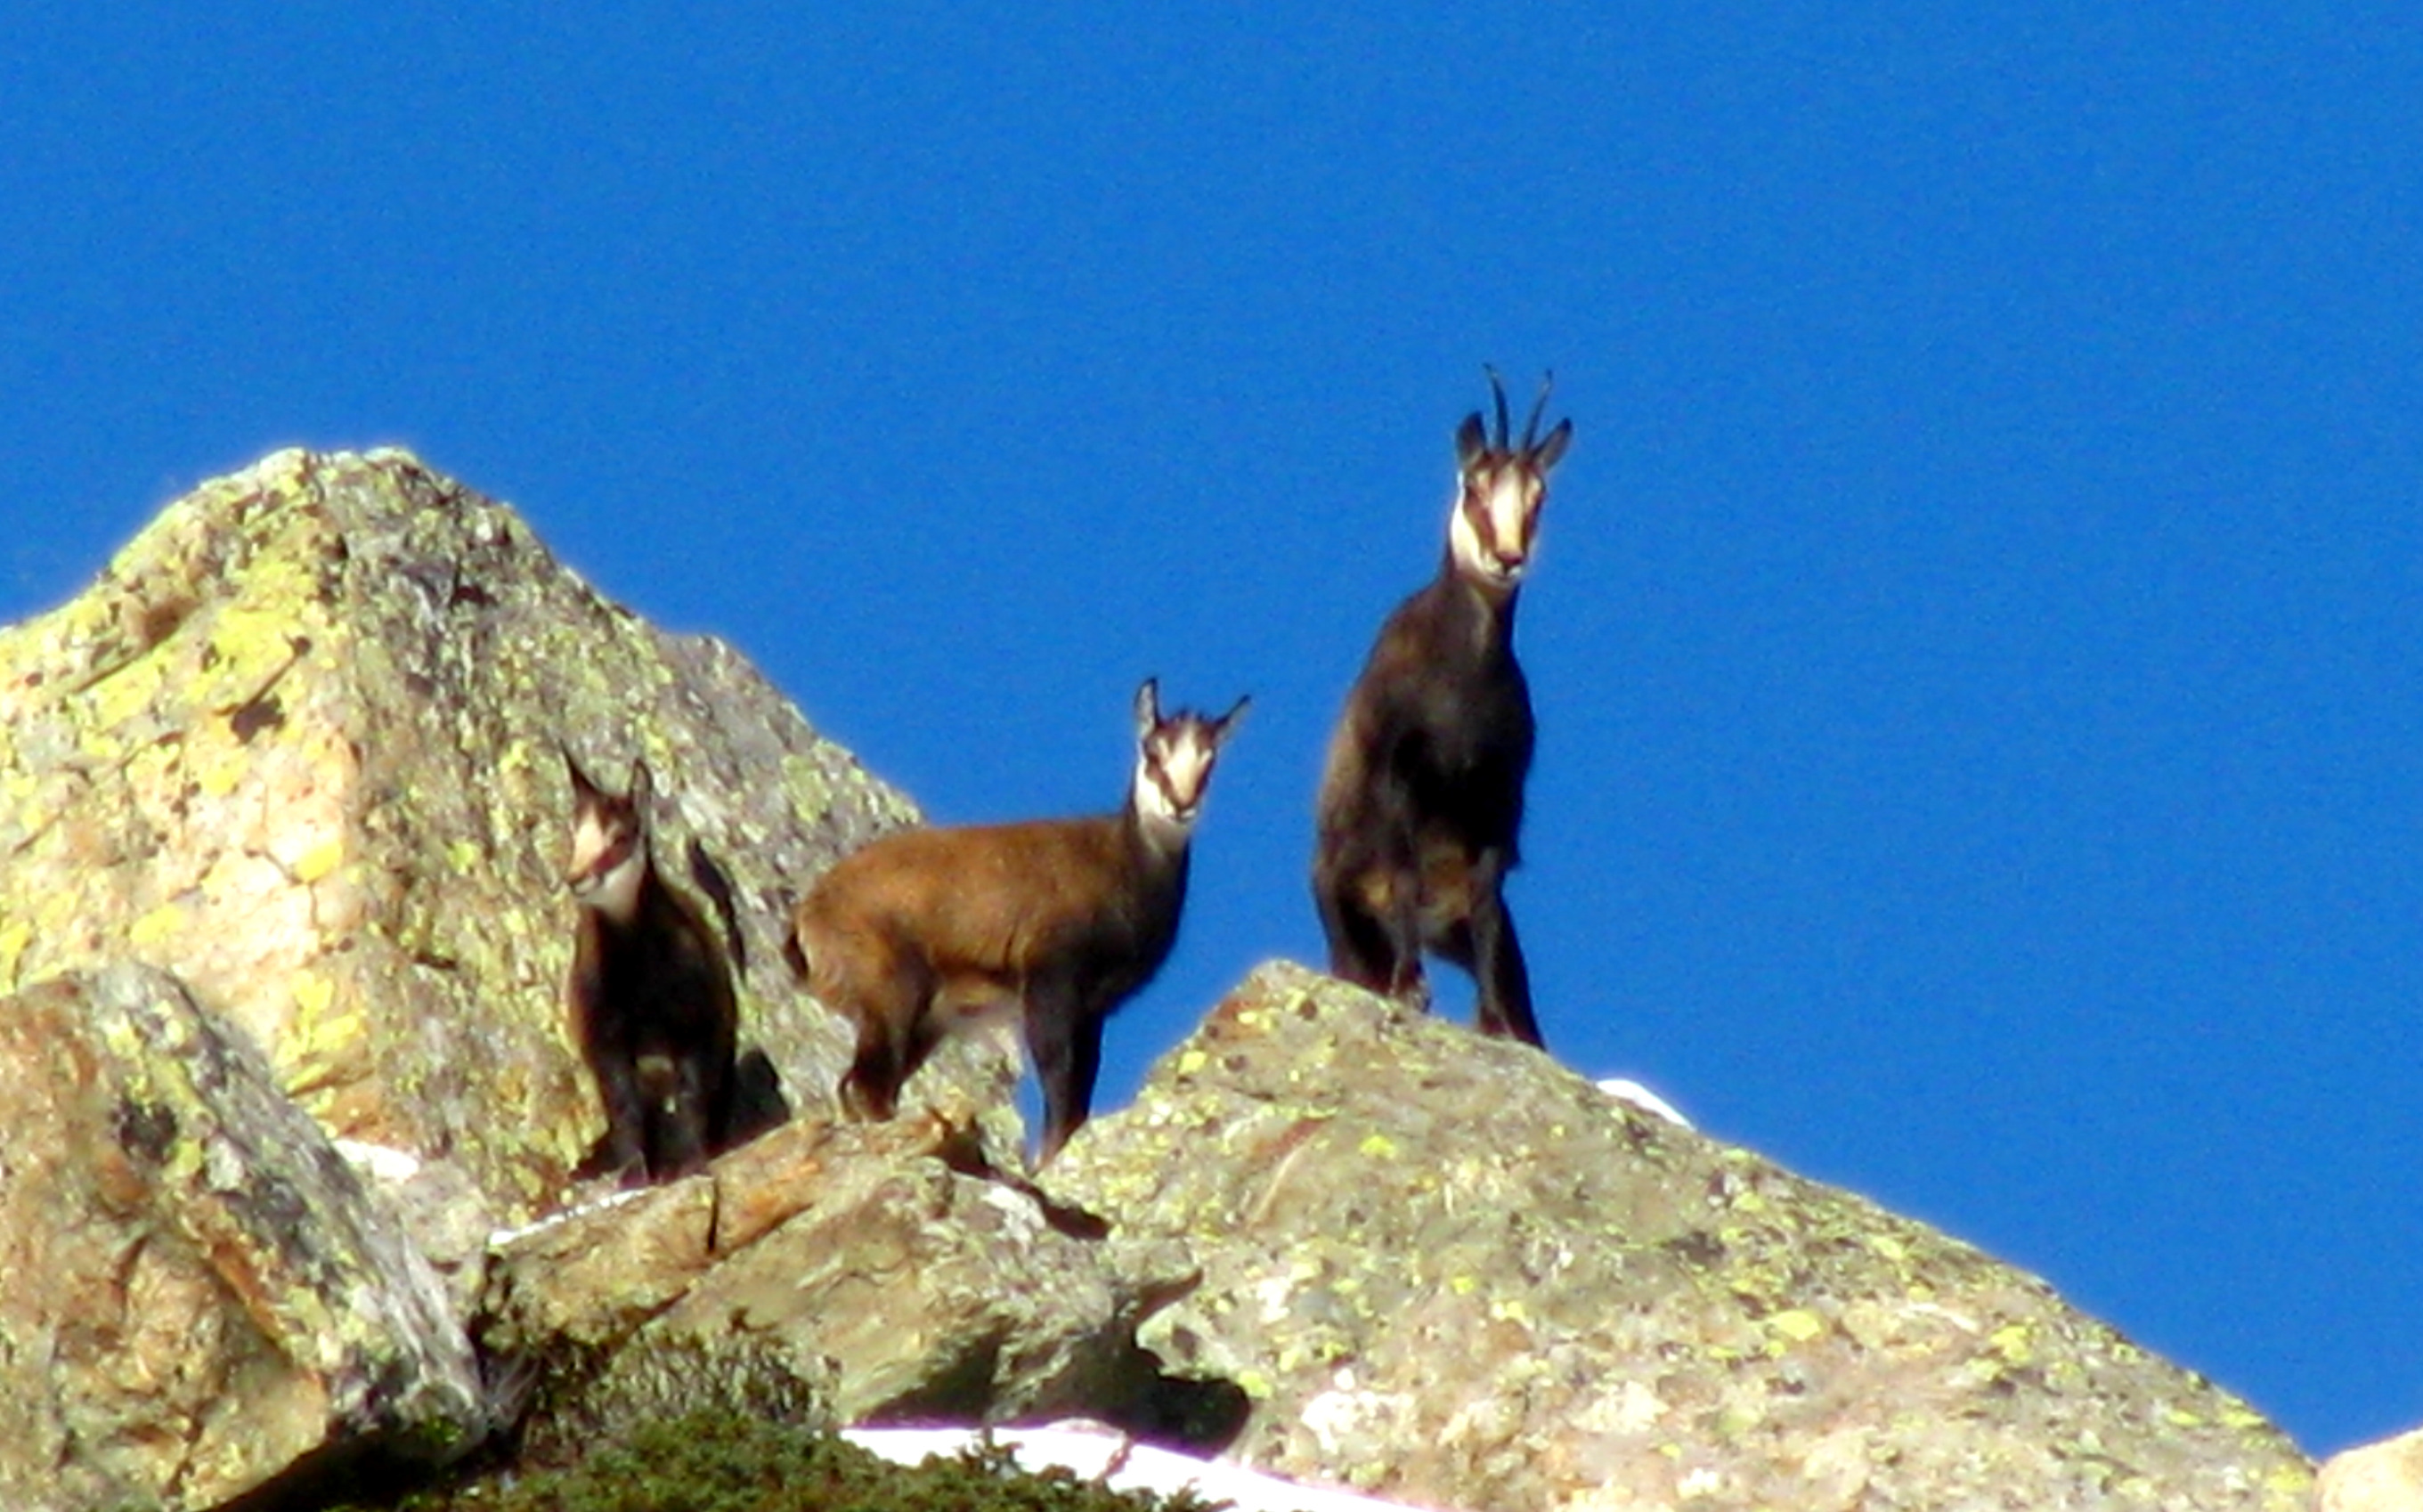 Photo © P. Morillon Horizons - Chamois & chevreau